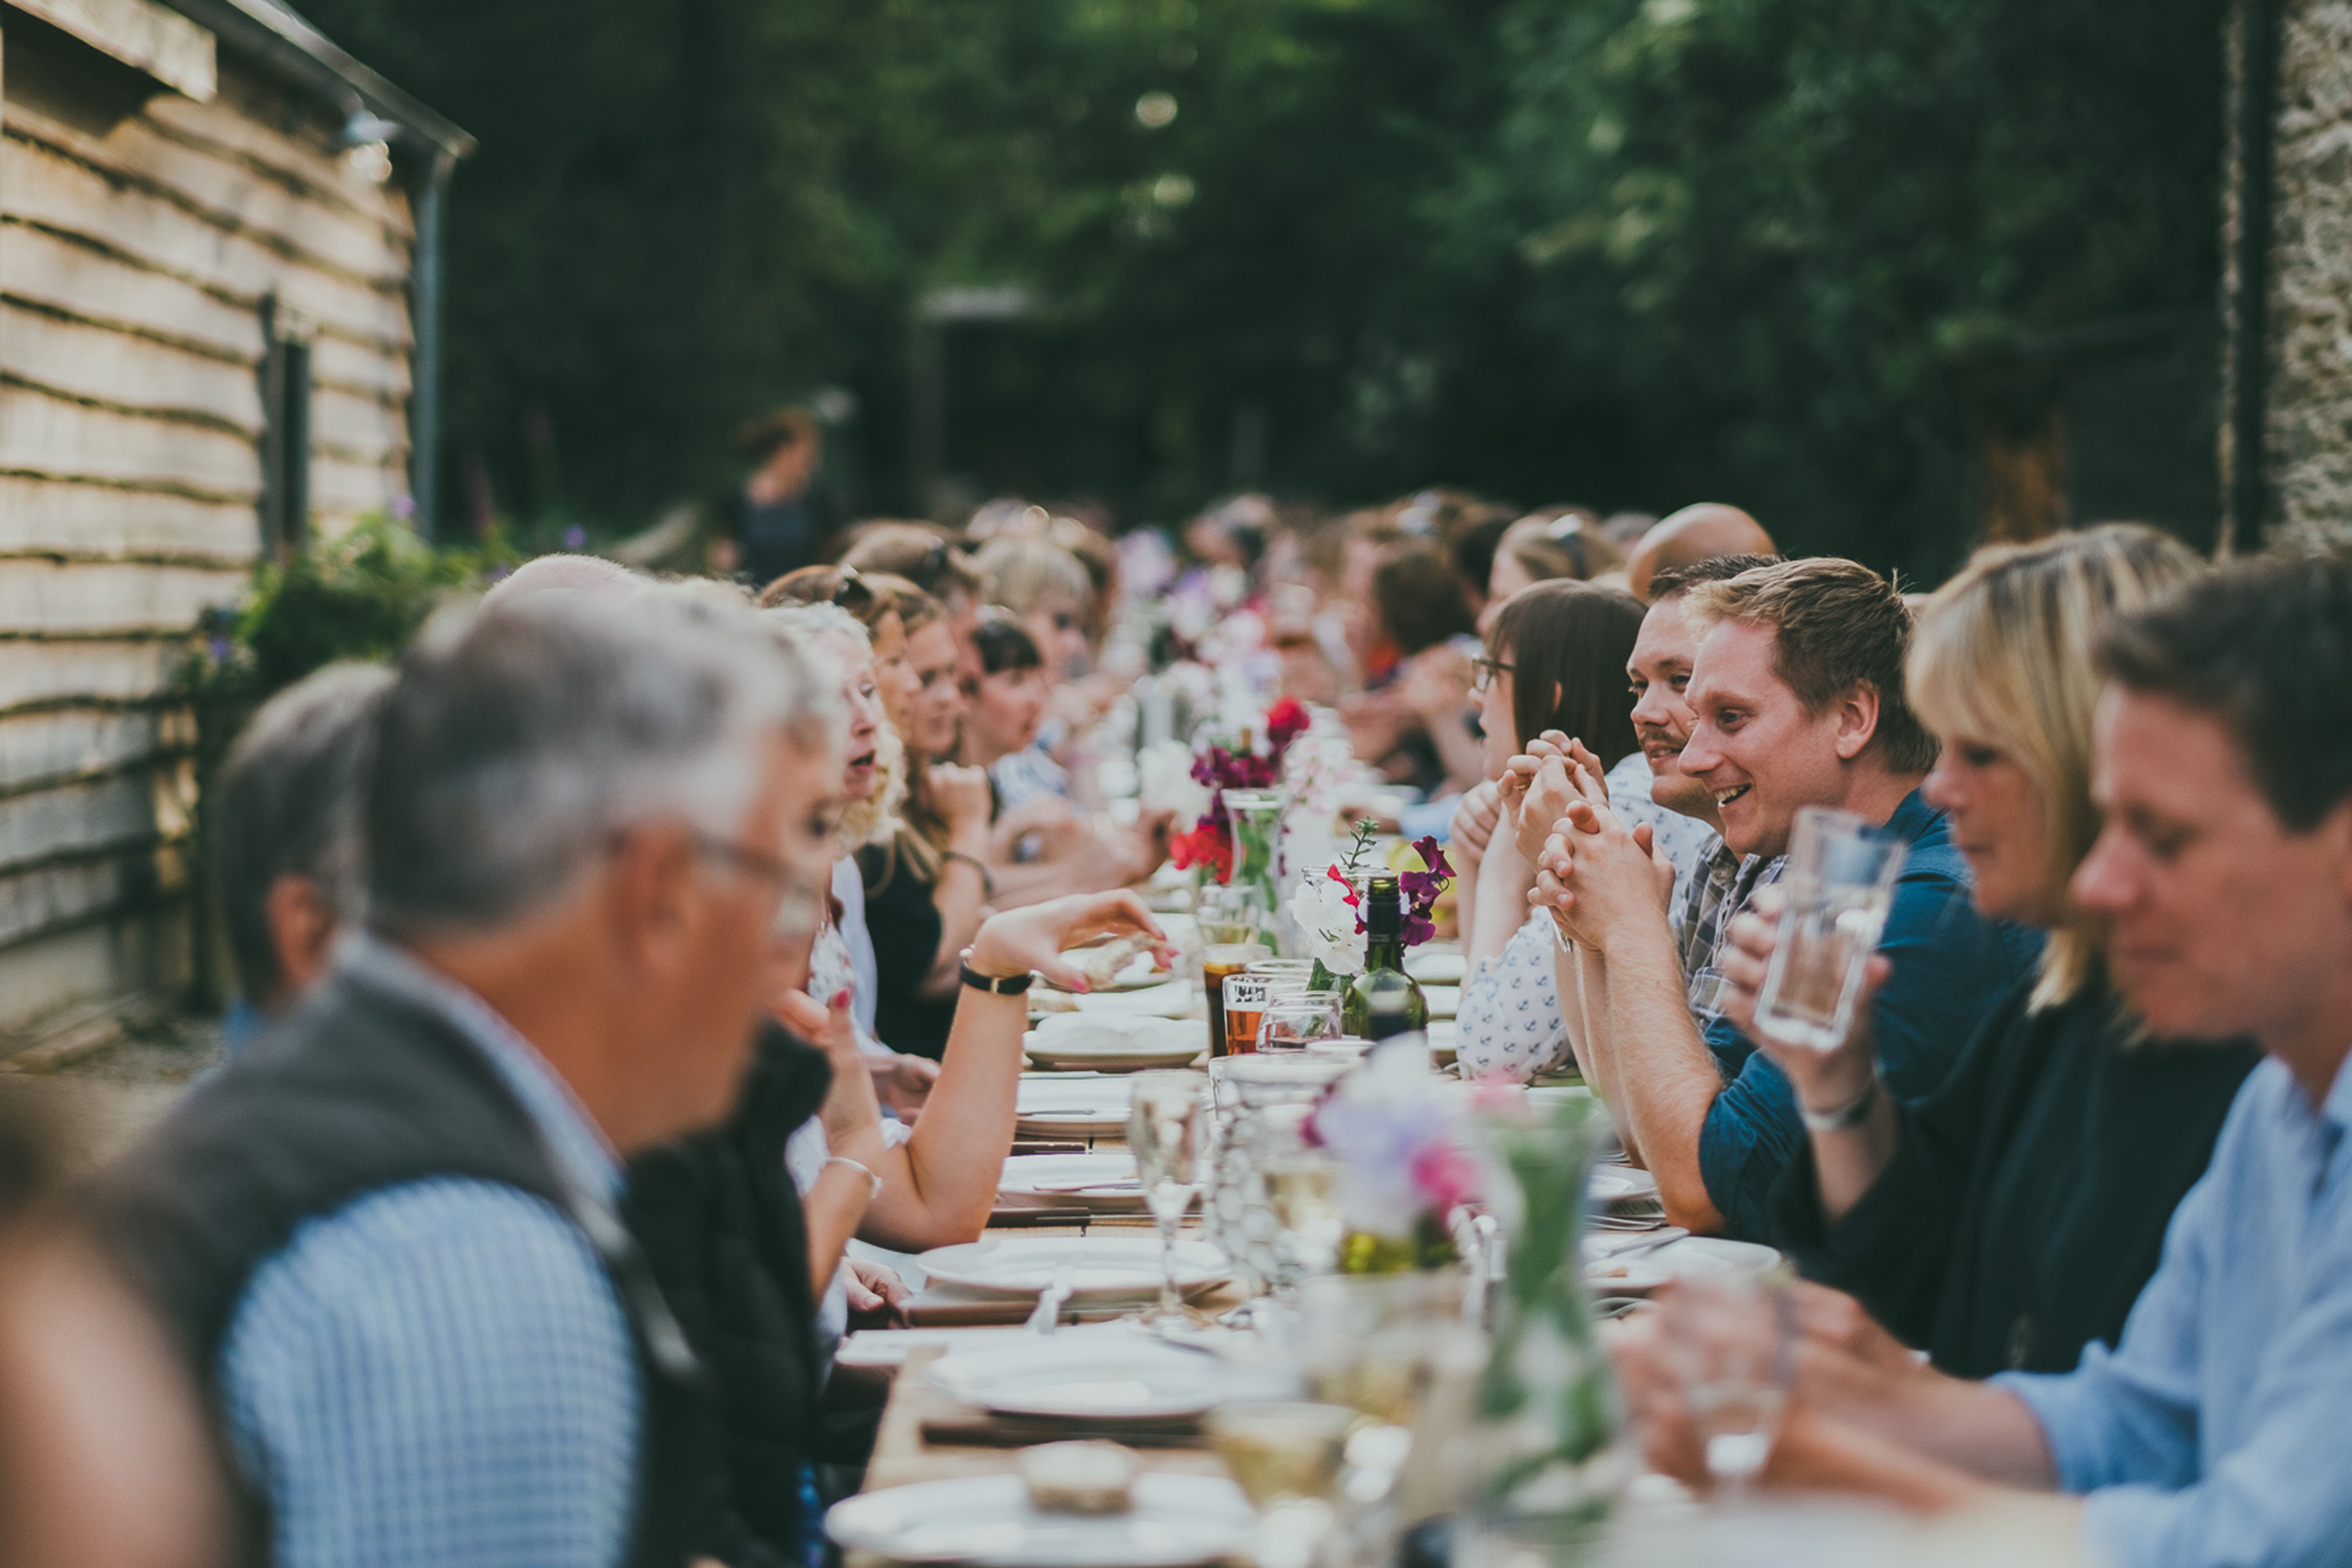 1,000 mouths Feast guests eating